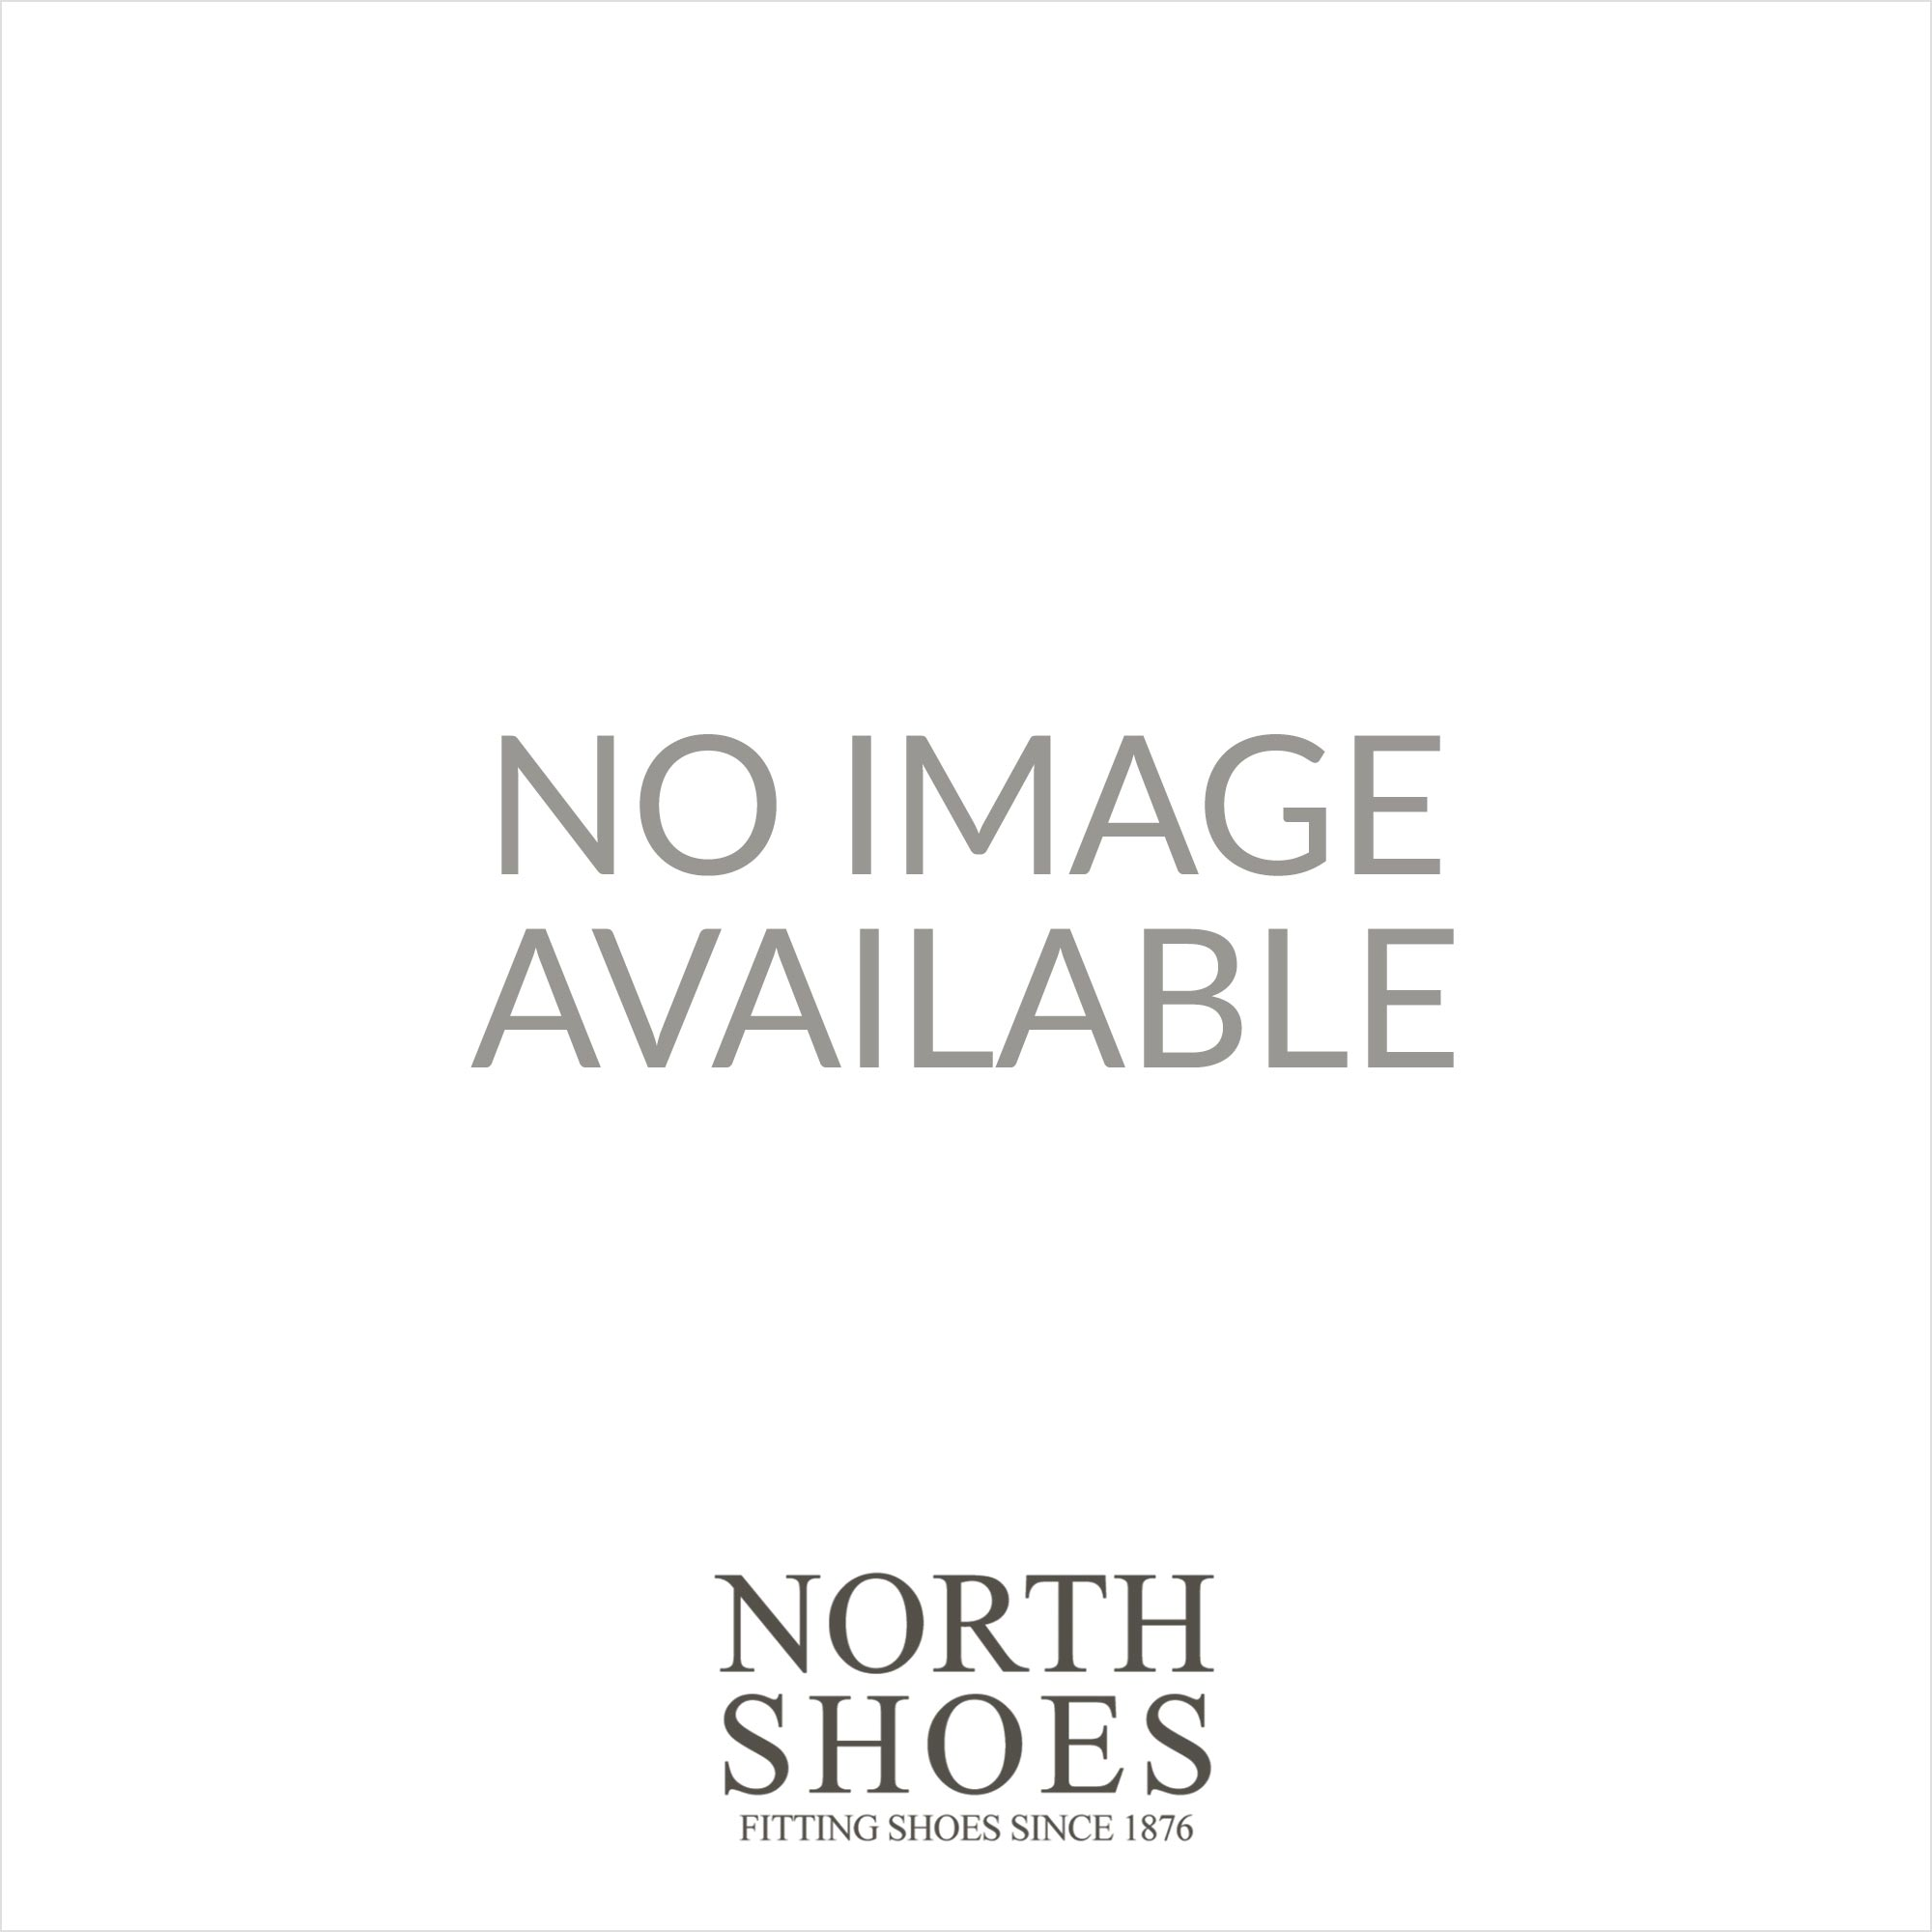 1426903f7b16 Clarks Little Mia Hot Pink Leather Butterfly Girls Pre Walker Mary Jane  Shoe - Clarks from North Shoes UK